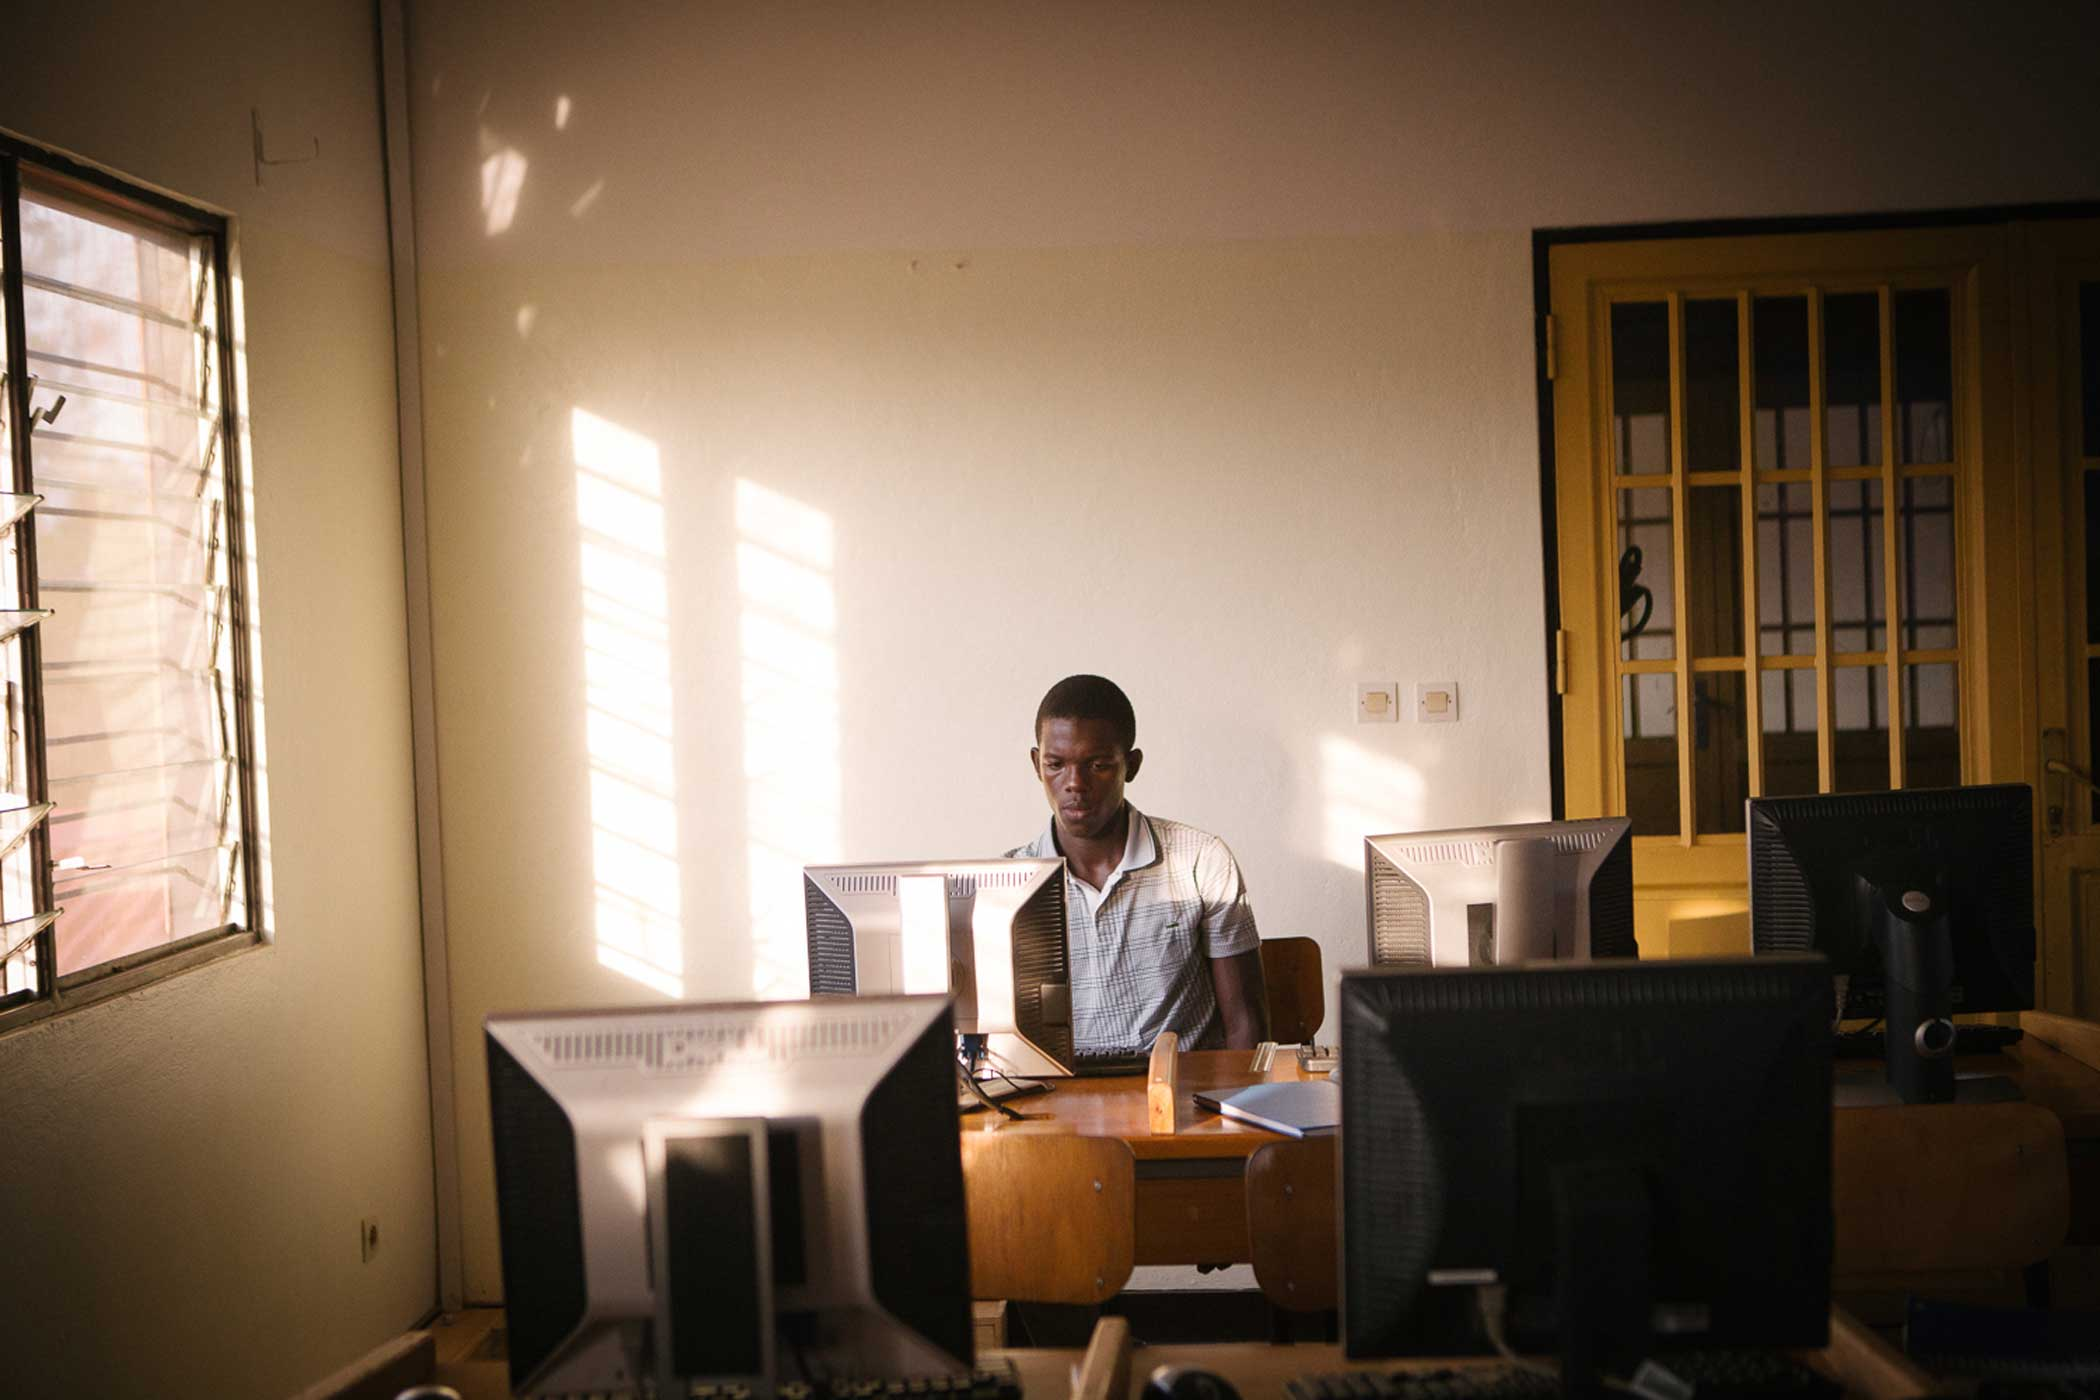 A S.O.S. Kagugu Technical High School student during an after school coding club run by HeHe Lab's youth fellows.